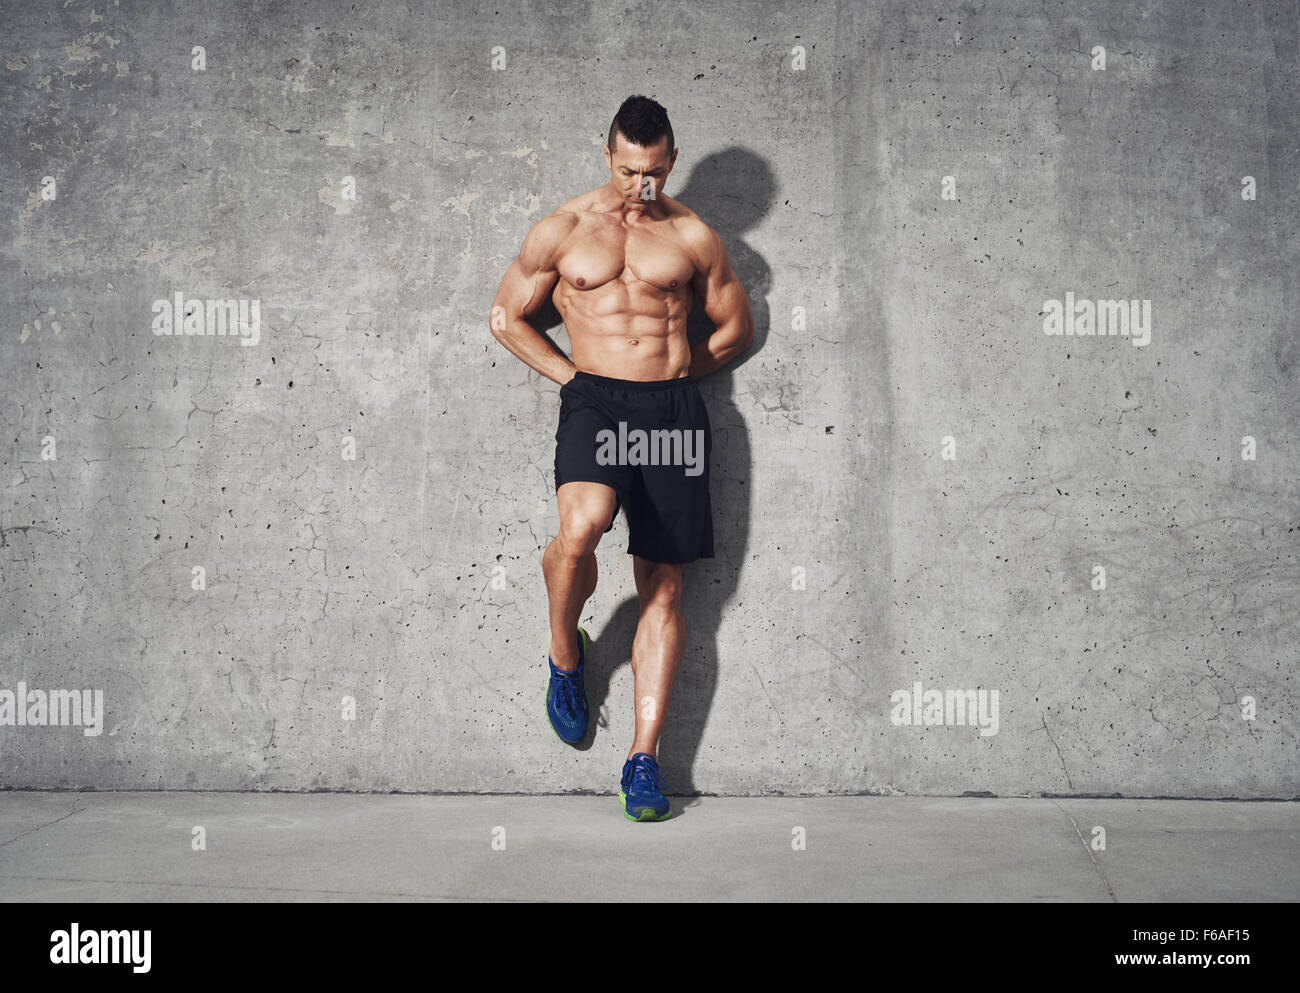 Fitness model standing against grey background, no shirt showing abdominal muscles, room for copy space, fitness - Stock Image